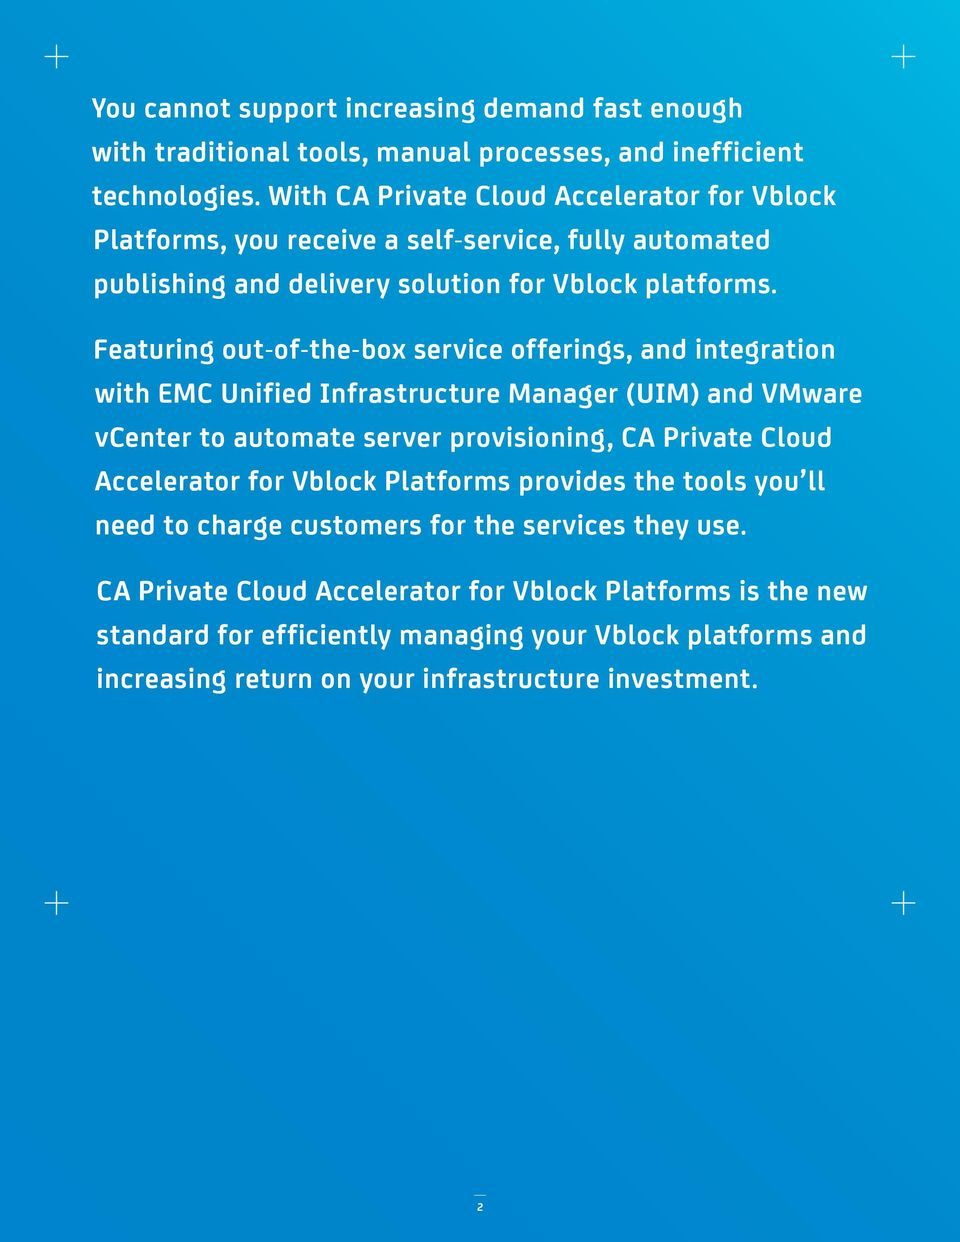 Featuring out-of-the-box service offerings, and integration with EMC Unified Infrastructure Manager (UIM) and VMware vcenter to automate server provisioning, CA Private Cloud